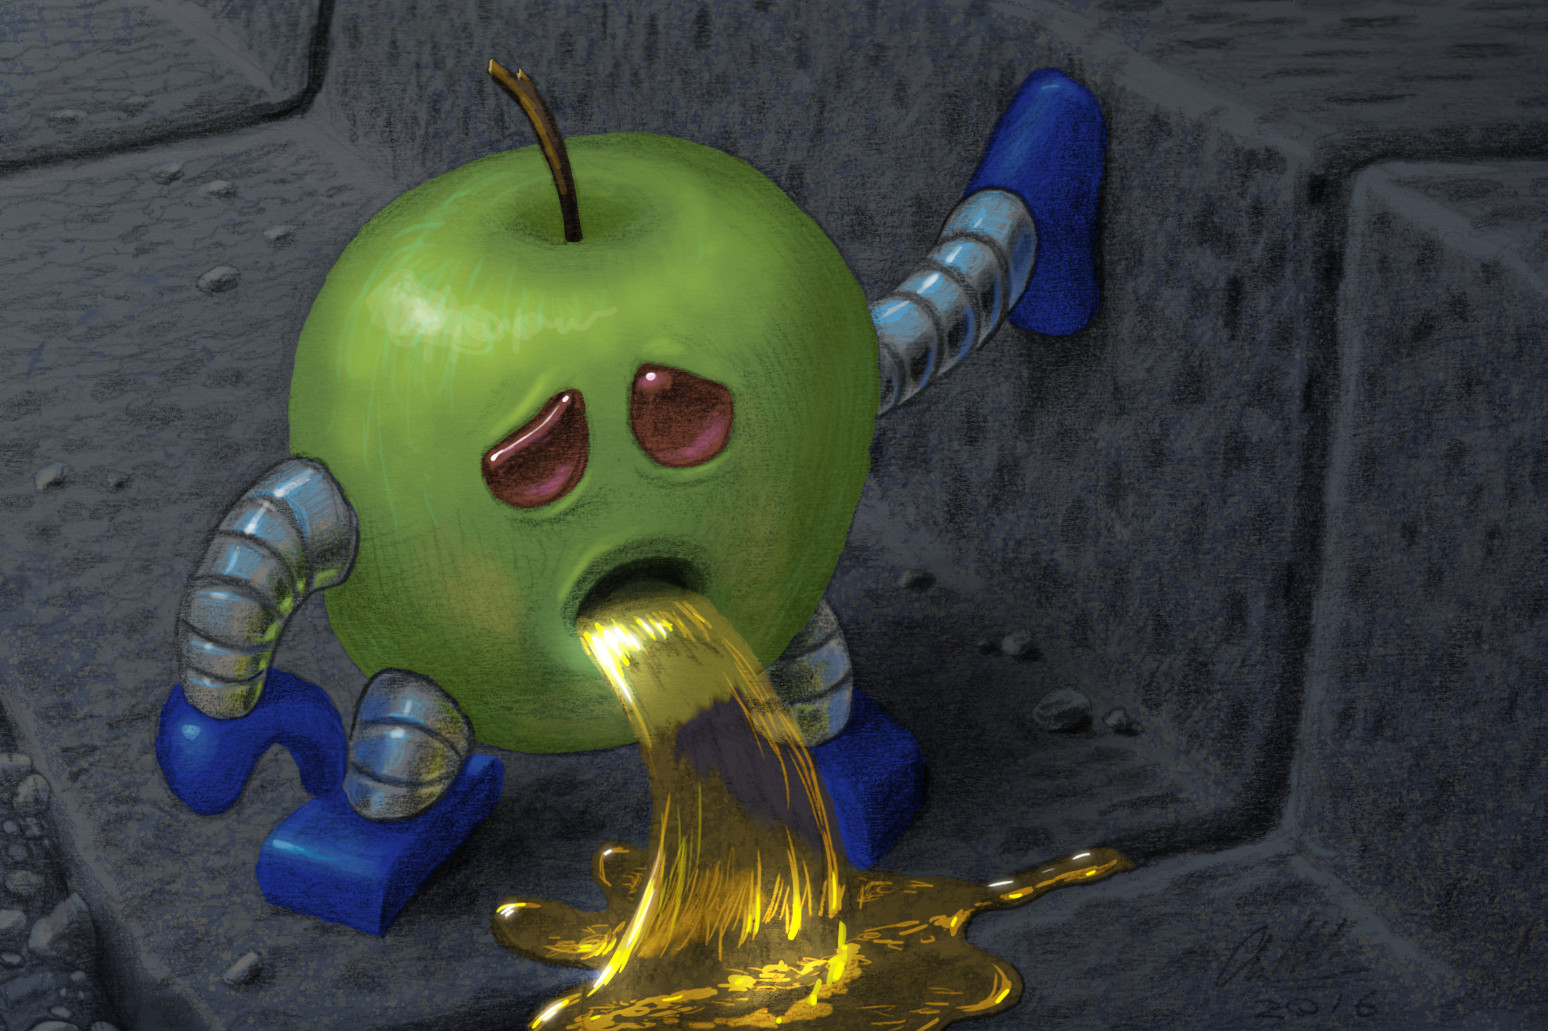 2018 - Drunk Robot Apple